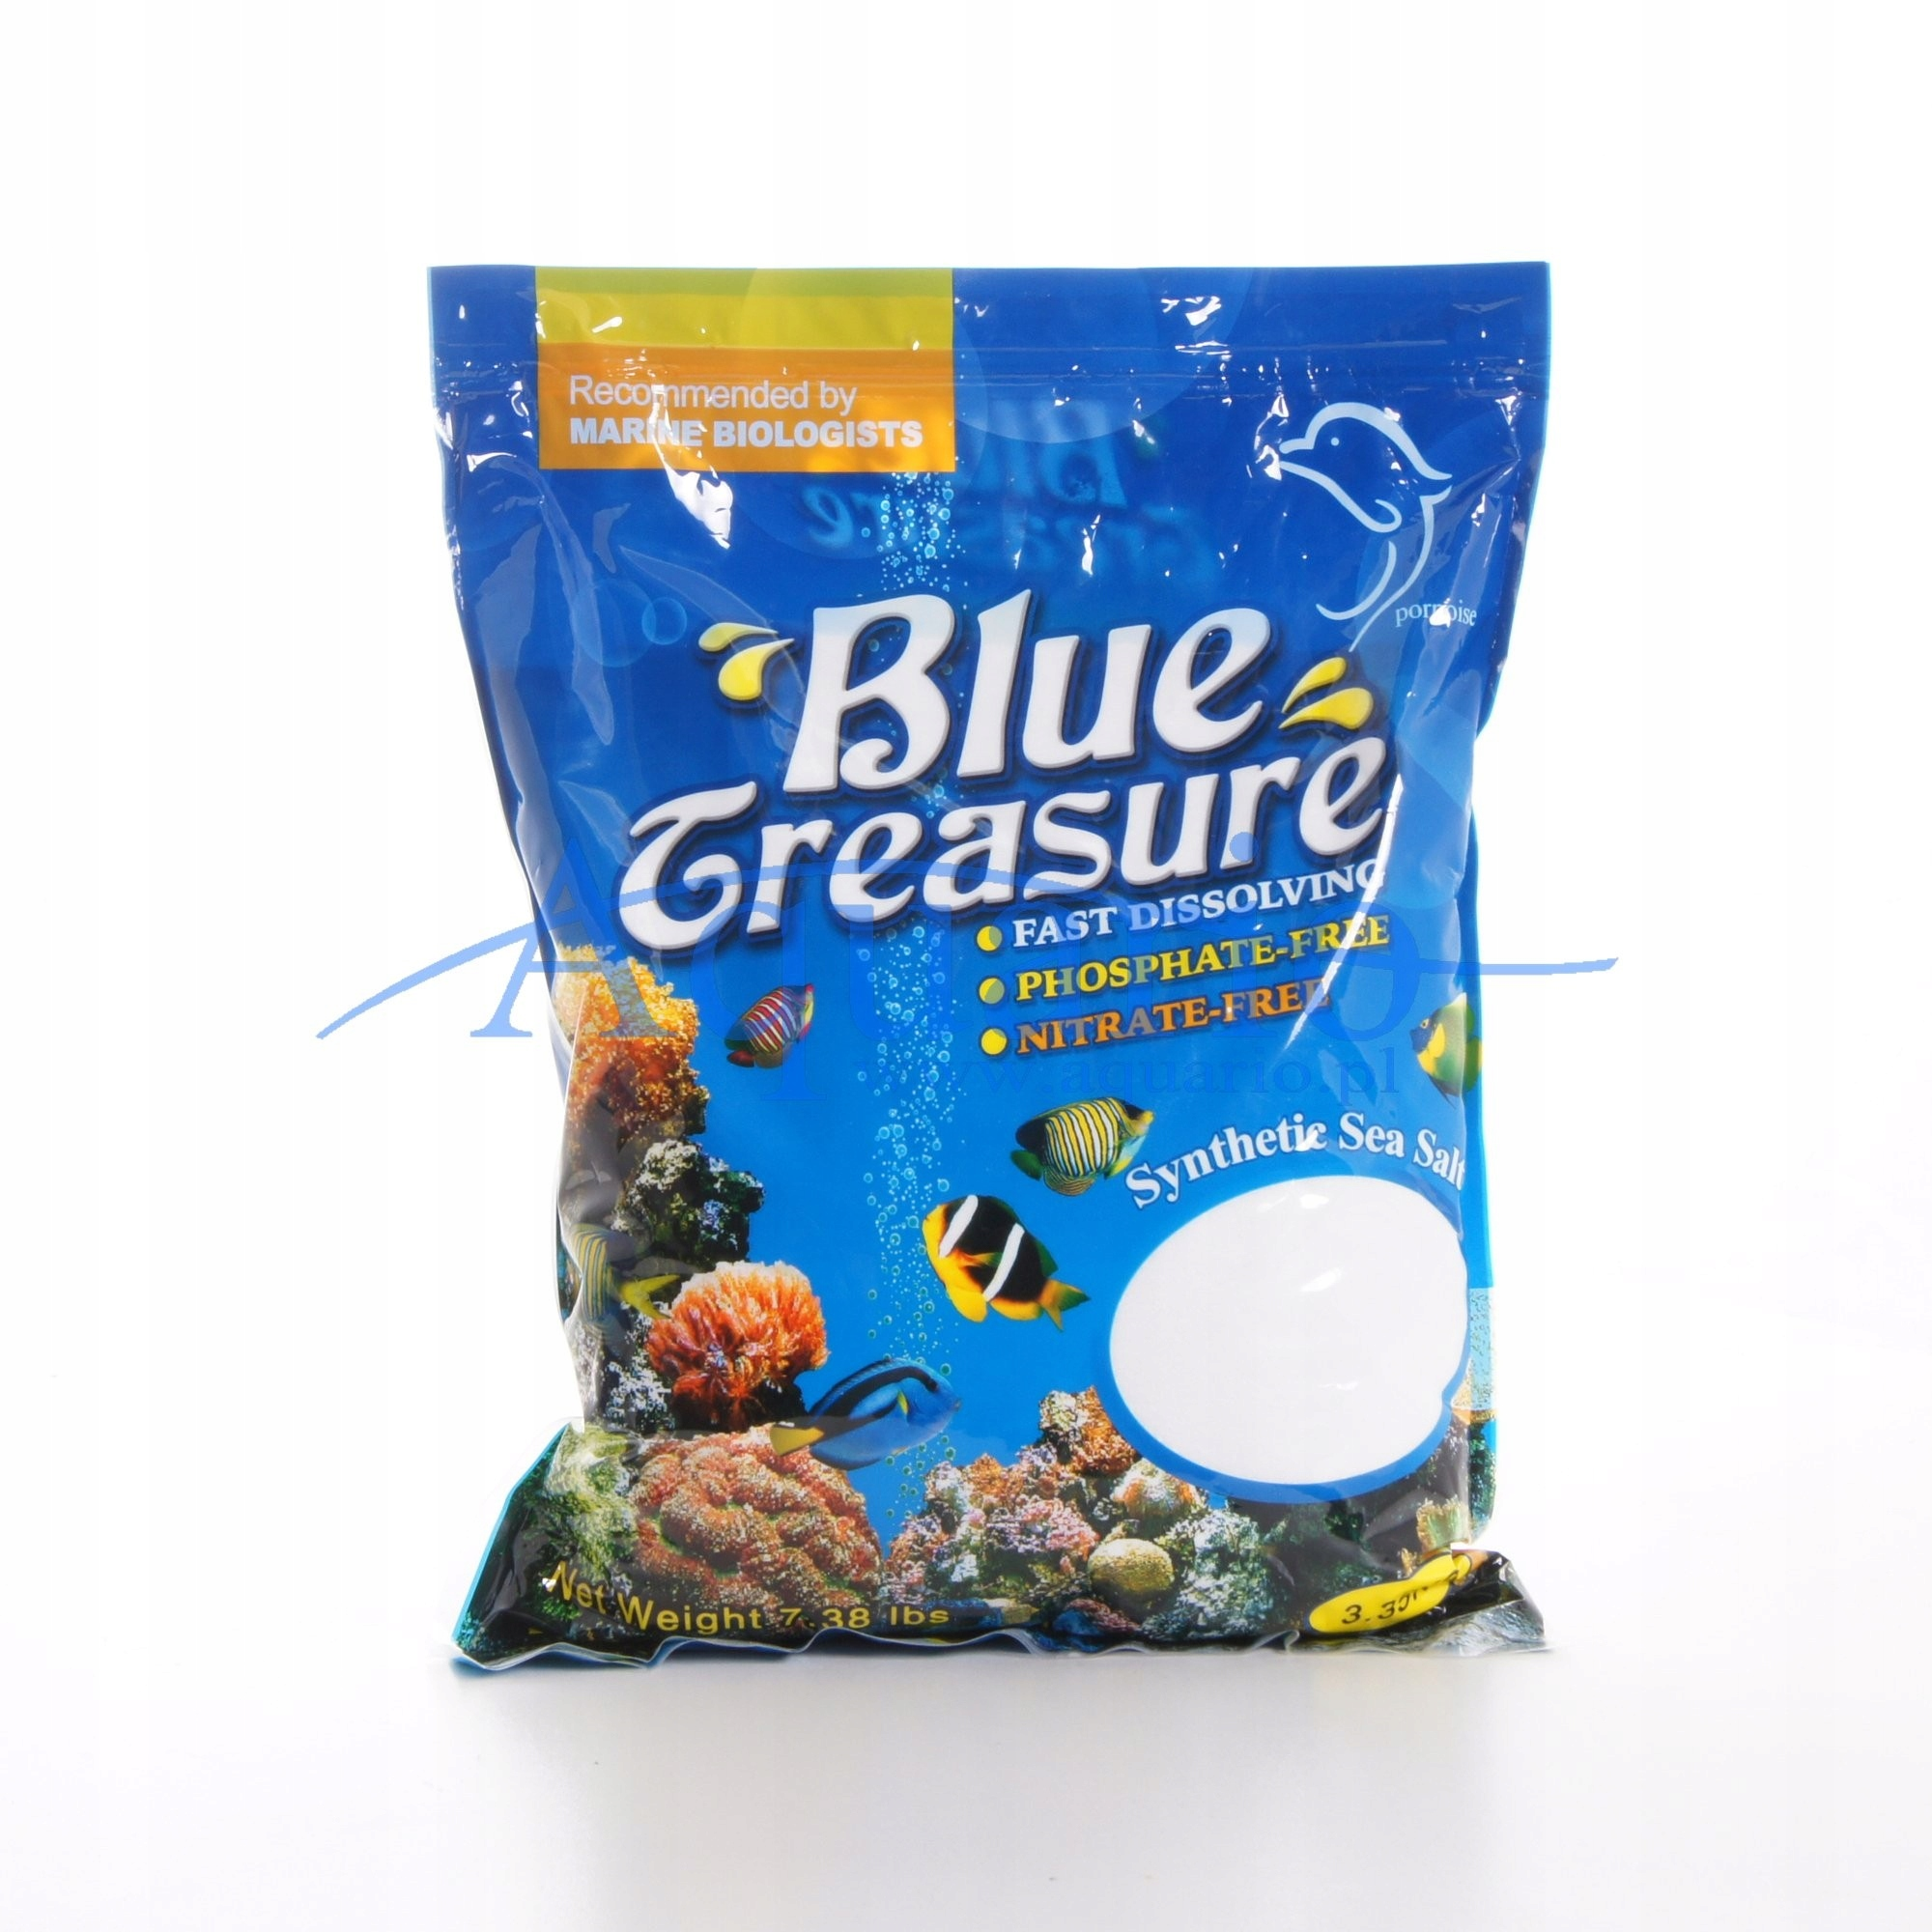 Blue Treasure Reef Sea Salt 3,3kg+GRATISY